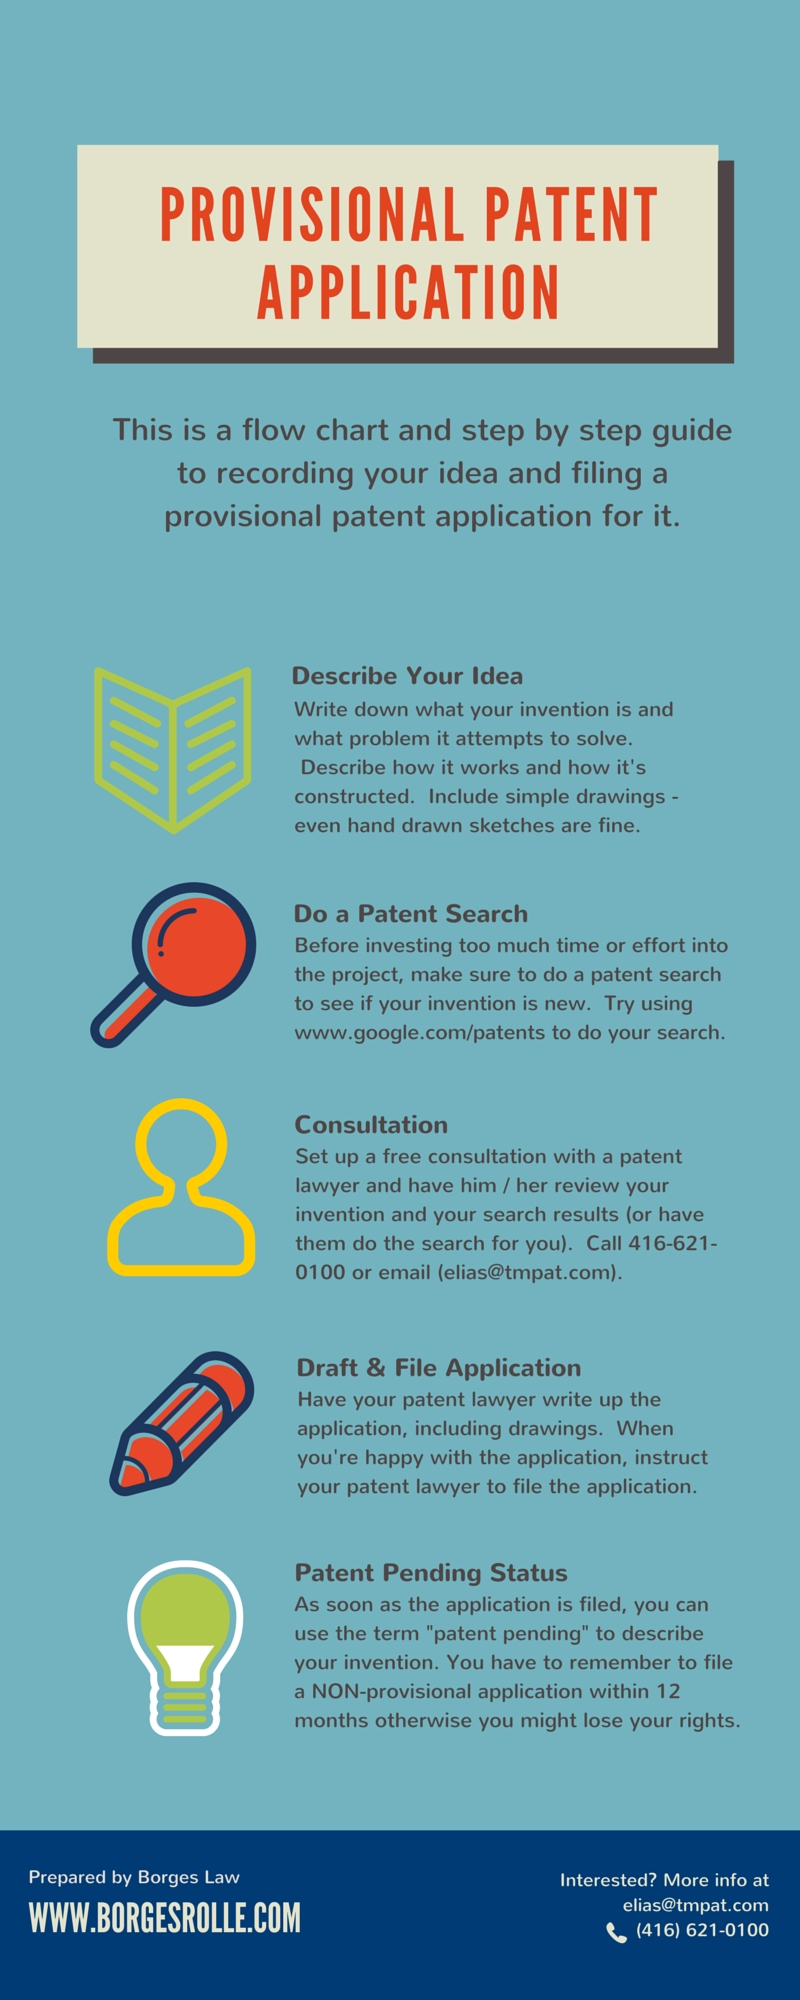 10 Awesome How Can I Patent An Idea provisional patent application how to file infographic 2020